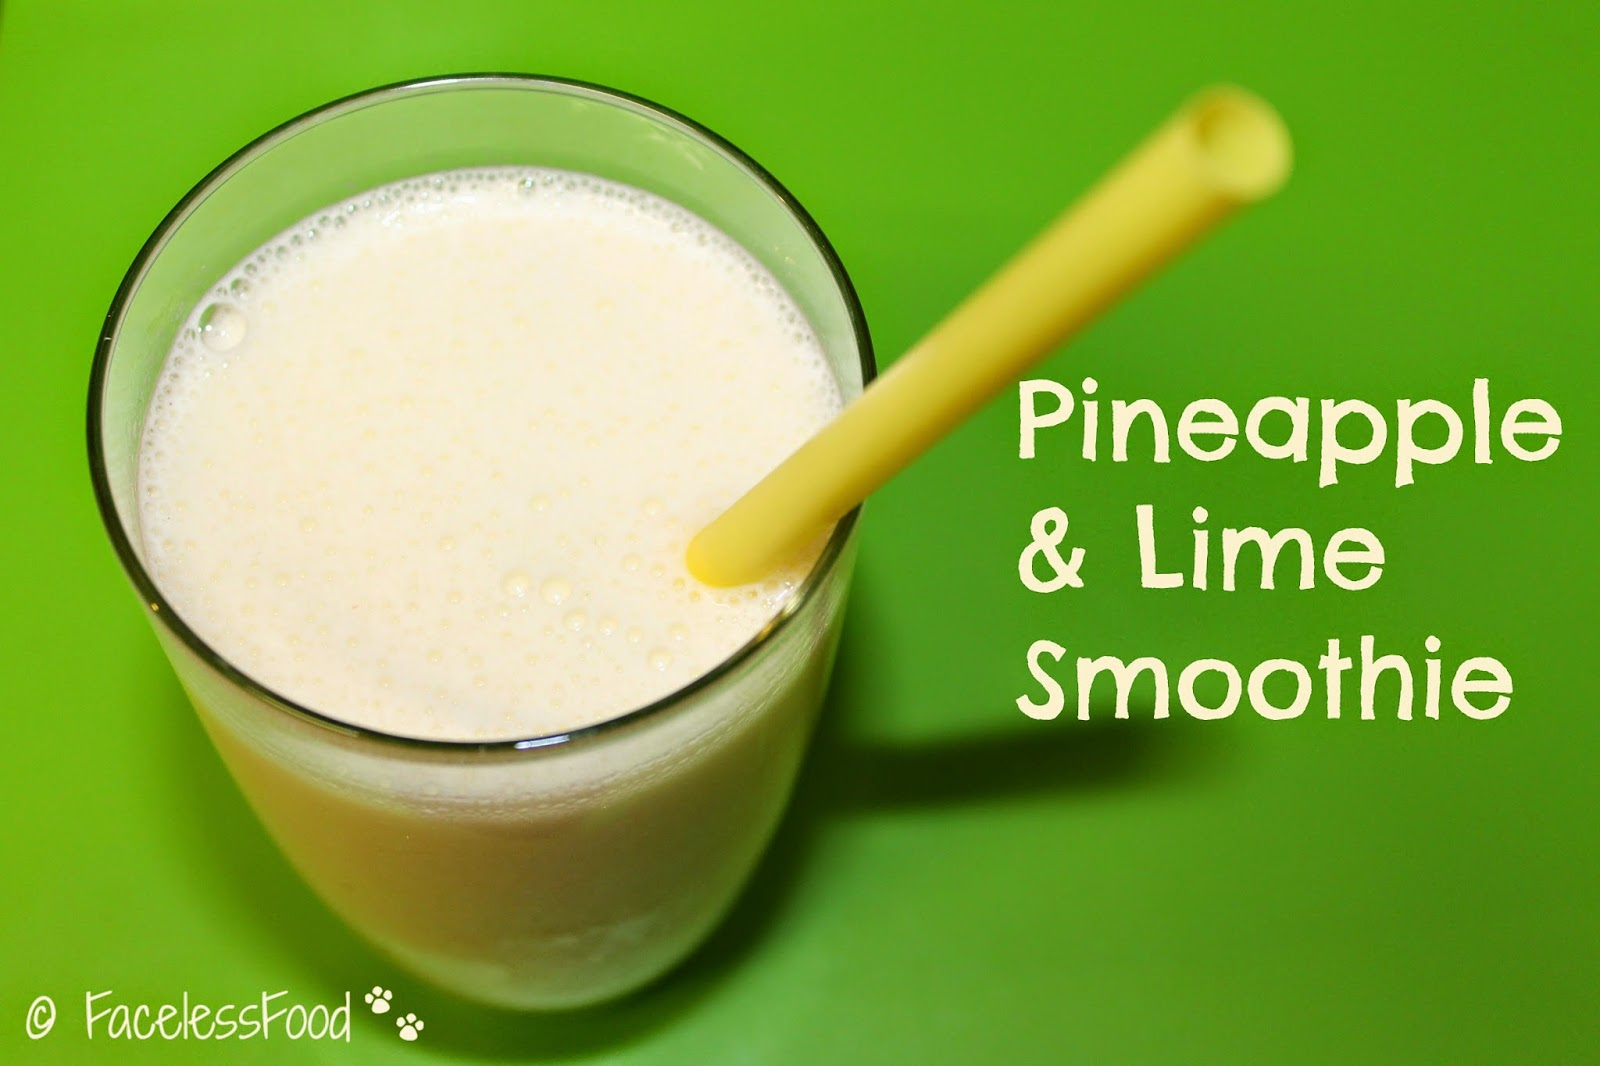 Pineapple & Lime Smoothie